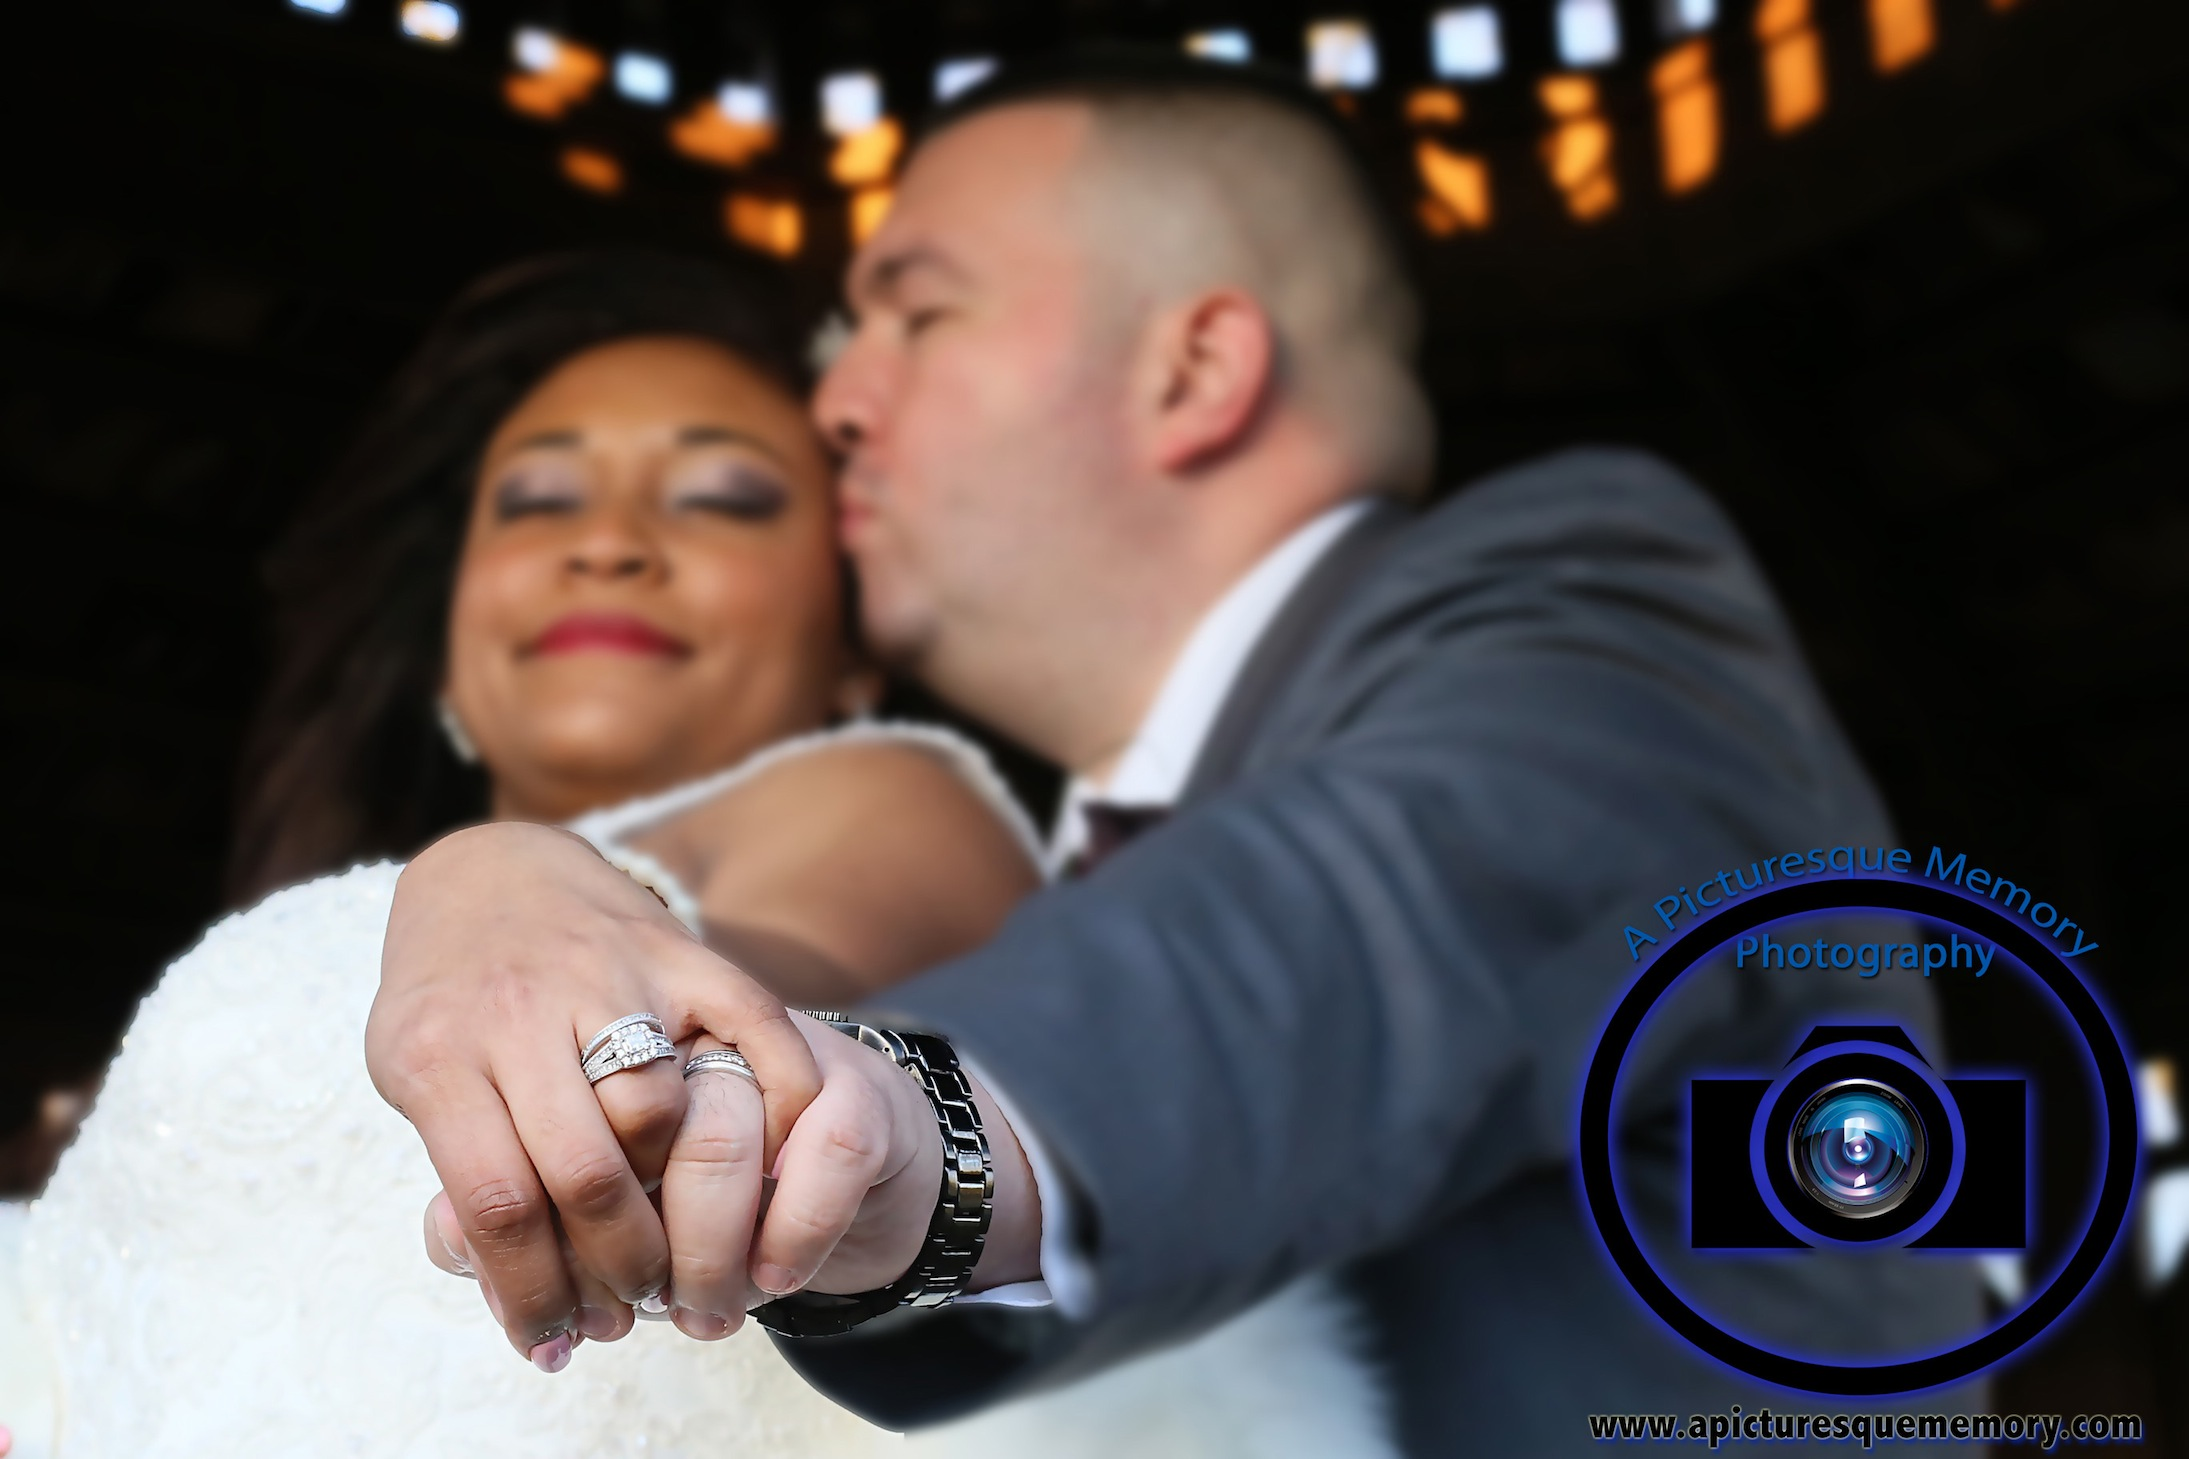 #njwedding, #njweddingphotography, #southbrunswickweddingphotographer#weddingphotos, #apicturesquememoryphotography, #pierresofsouthbrunswickweddingphotographer, #brideandgroom, #weddingbands